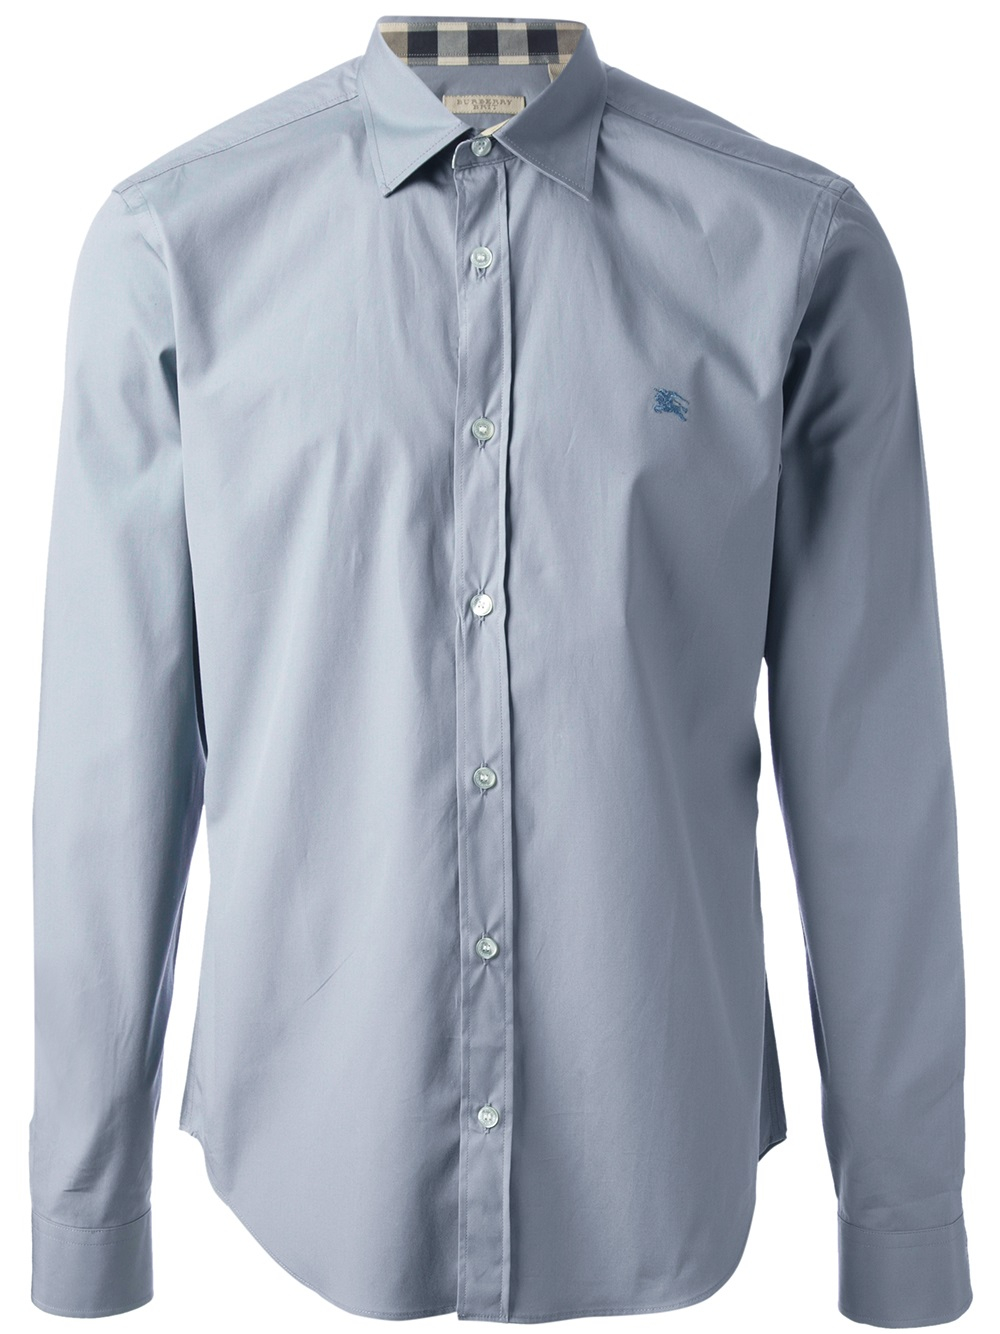 A dress shirt, button shirt, button-front, button-front shirt, or button-up shirt is a garment with a collar and a full-length opening at the front, which is fastened using buttons or shirt studs.